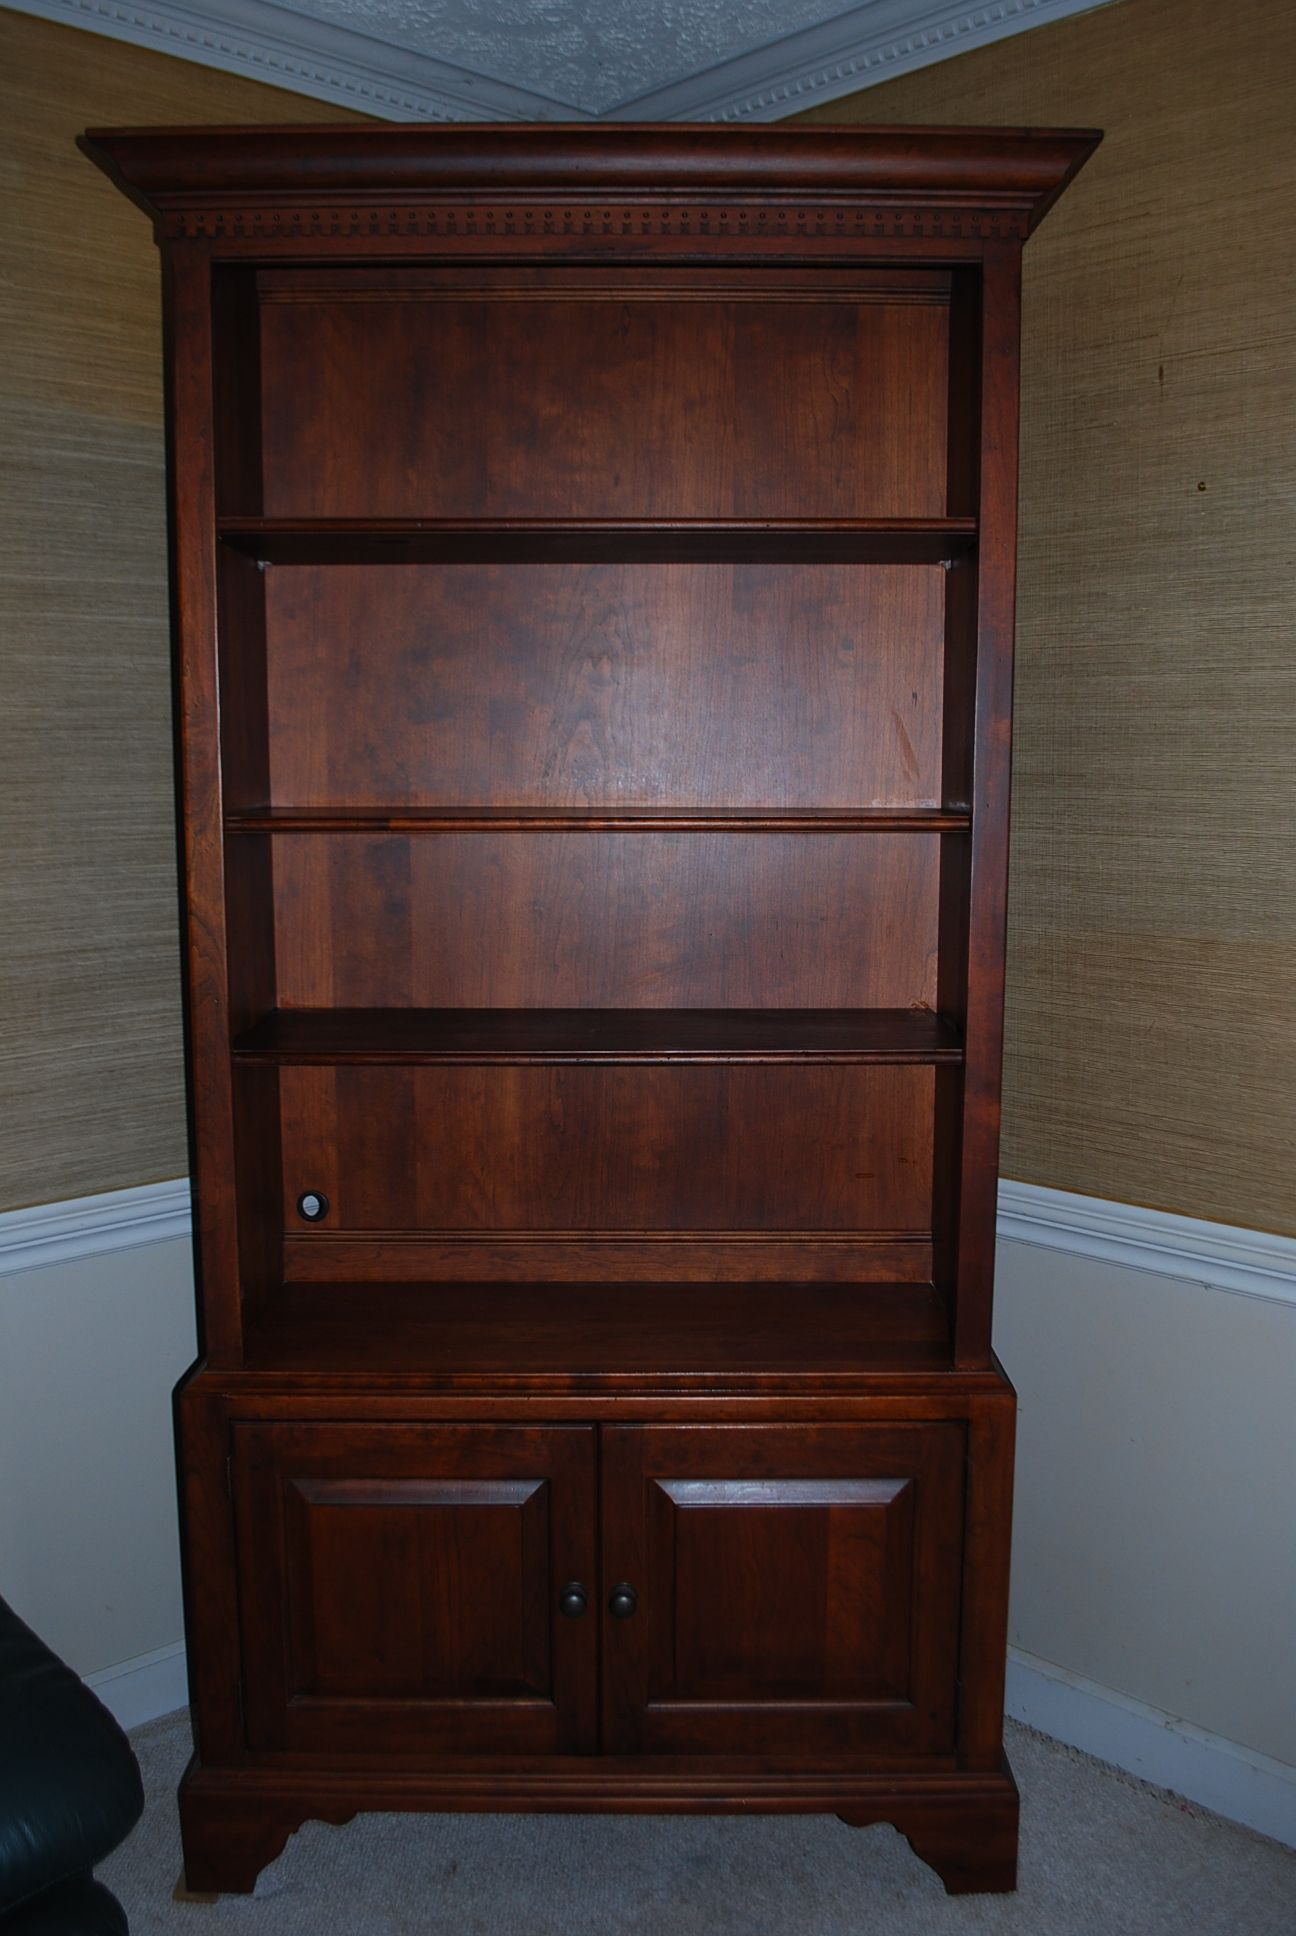 Bob Timberlake Furniture Lexington #25: Bob Timberlake Cherry Bookshelf